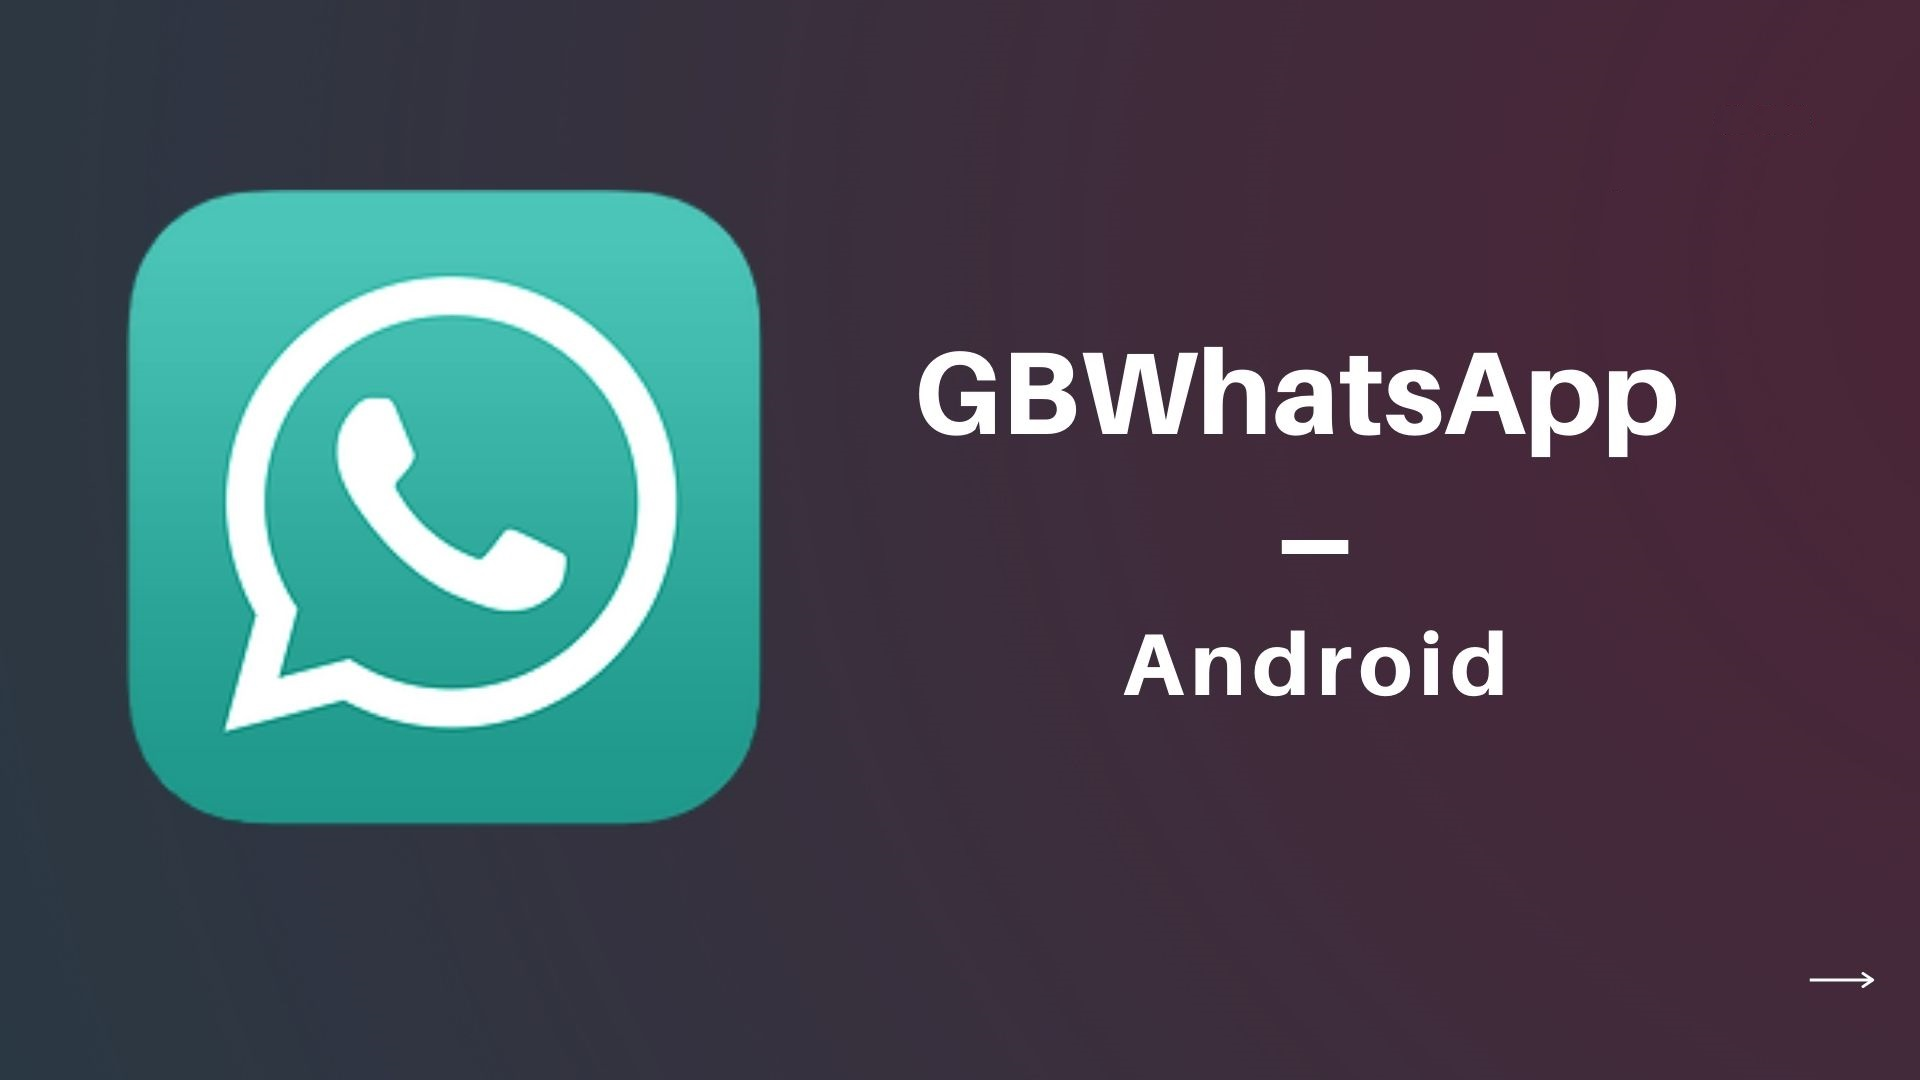 download-GBWhatsApp-Android-free